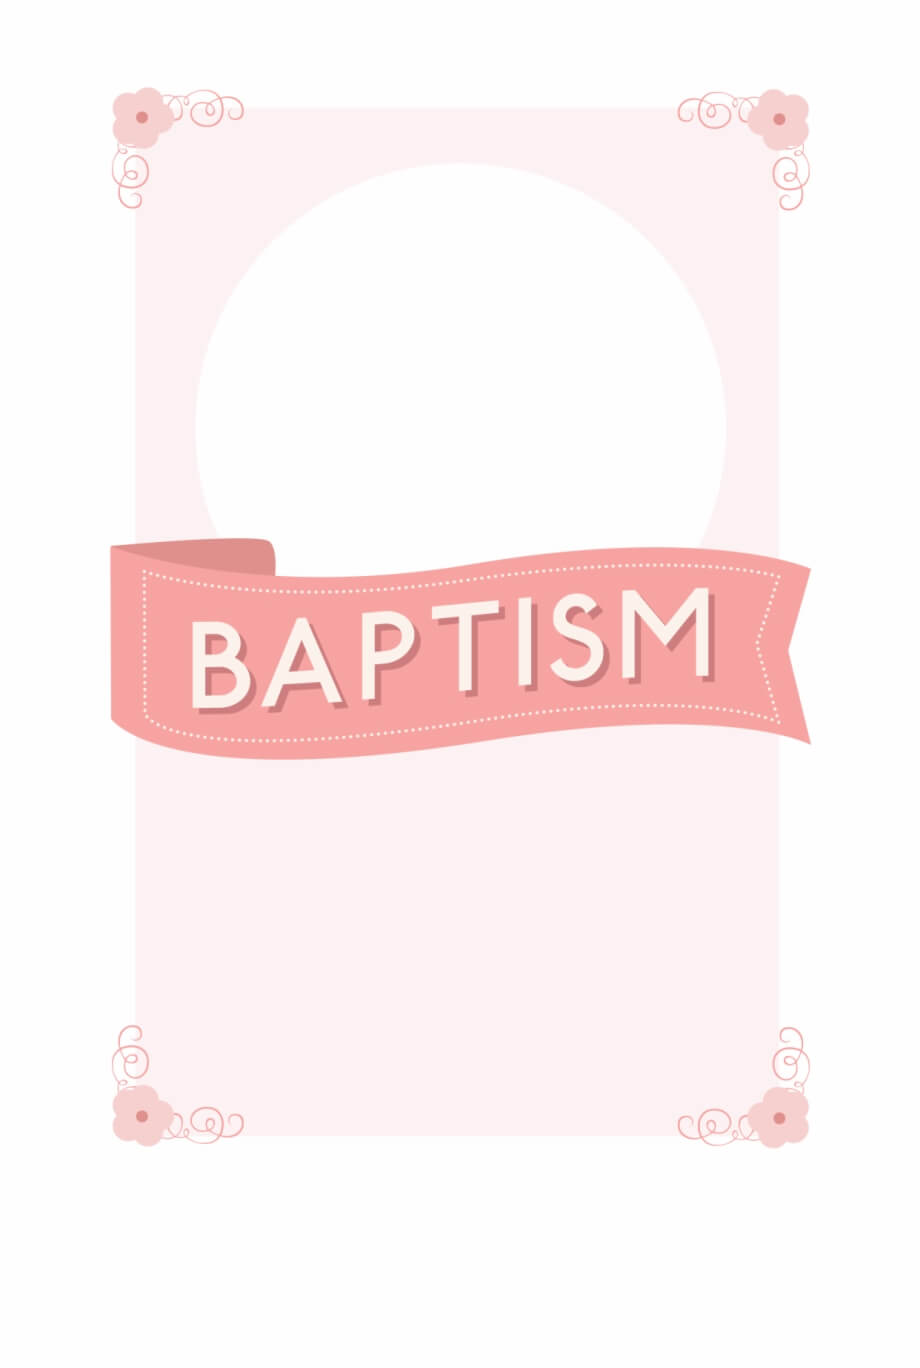 032 Template Ideas 1508436 Free Printable Baptism For Blank Christening Invitation Templates